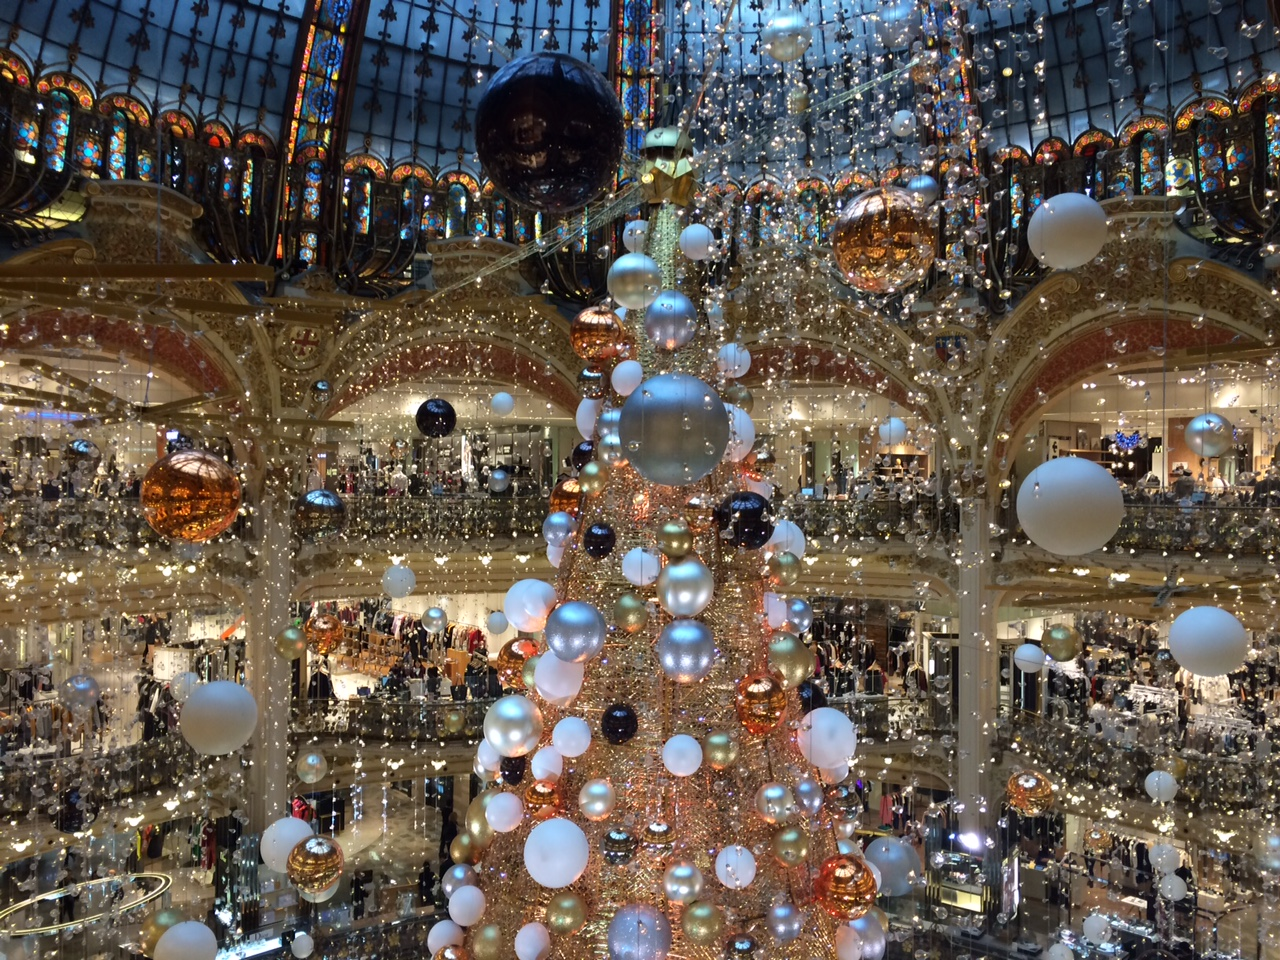 Say oui to paris 2015 holiday decor at galeries lafayette for Parisian christmas decorations home